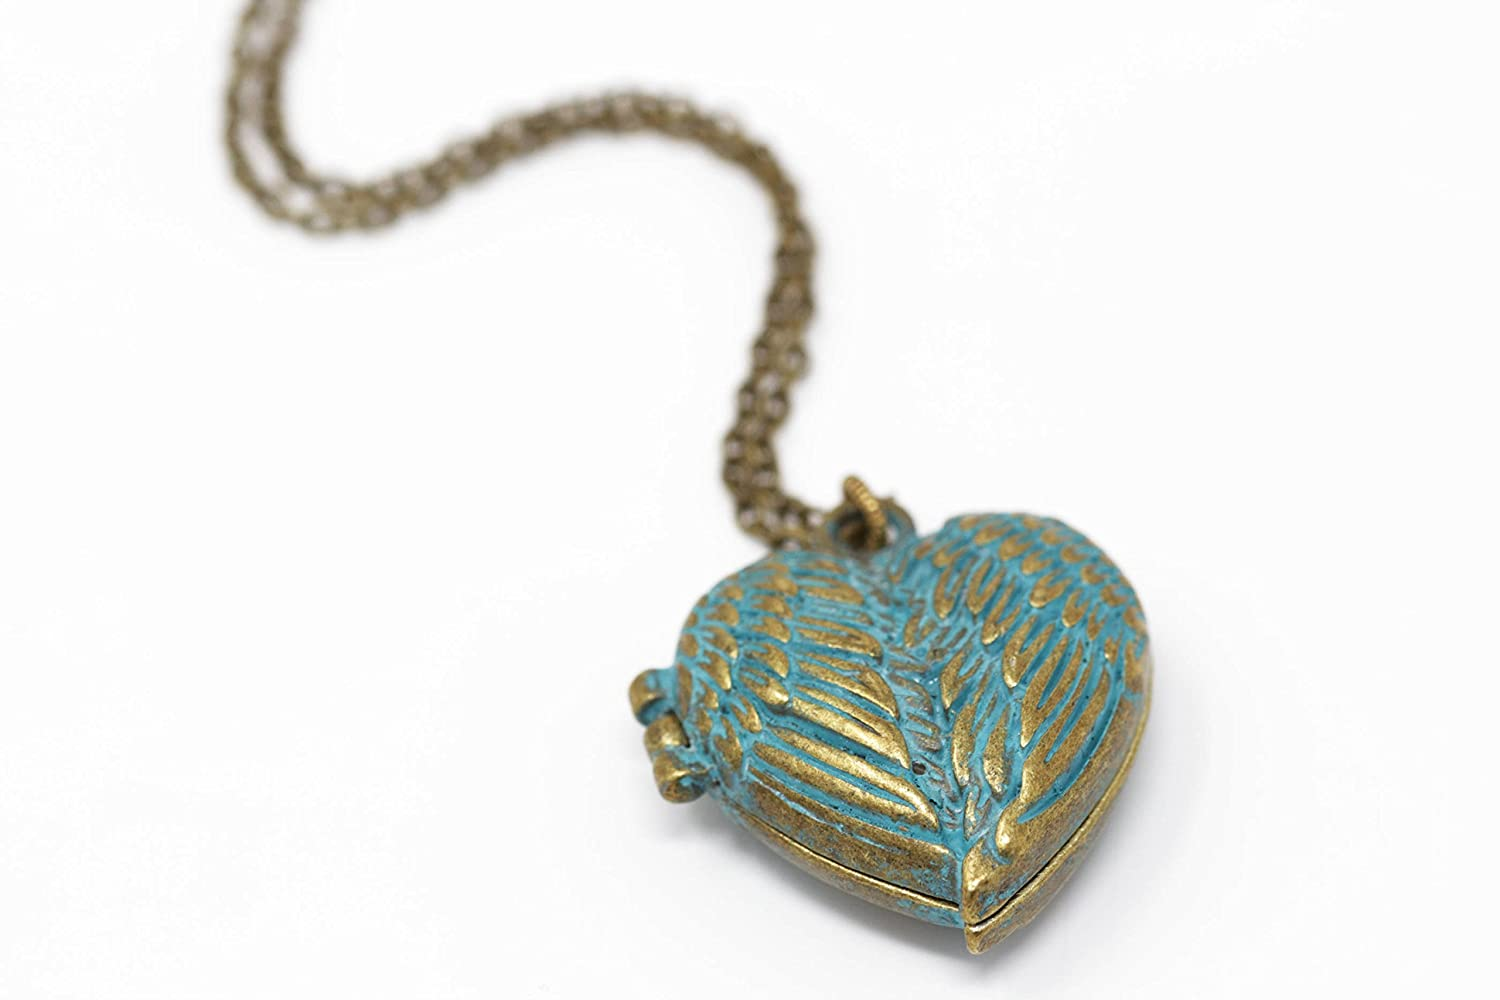 Brass Heart Pendant Necklace - Patina Green - 24 Inch Chain